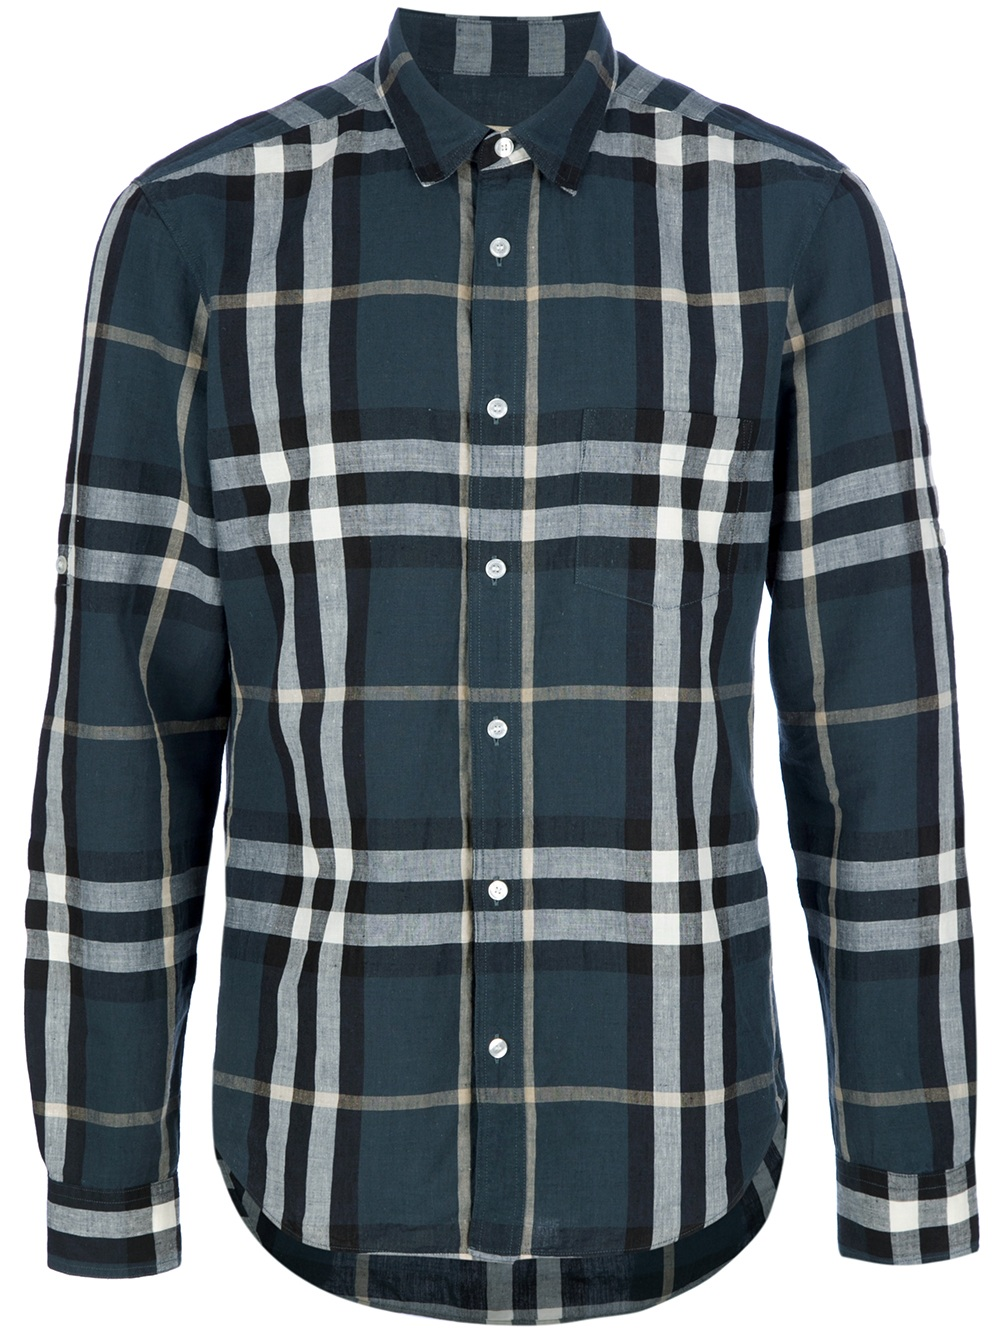 Burberry brit jesse printed cotton shirt in blue for men for Burberry brit checked shirt